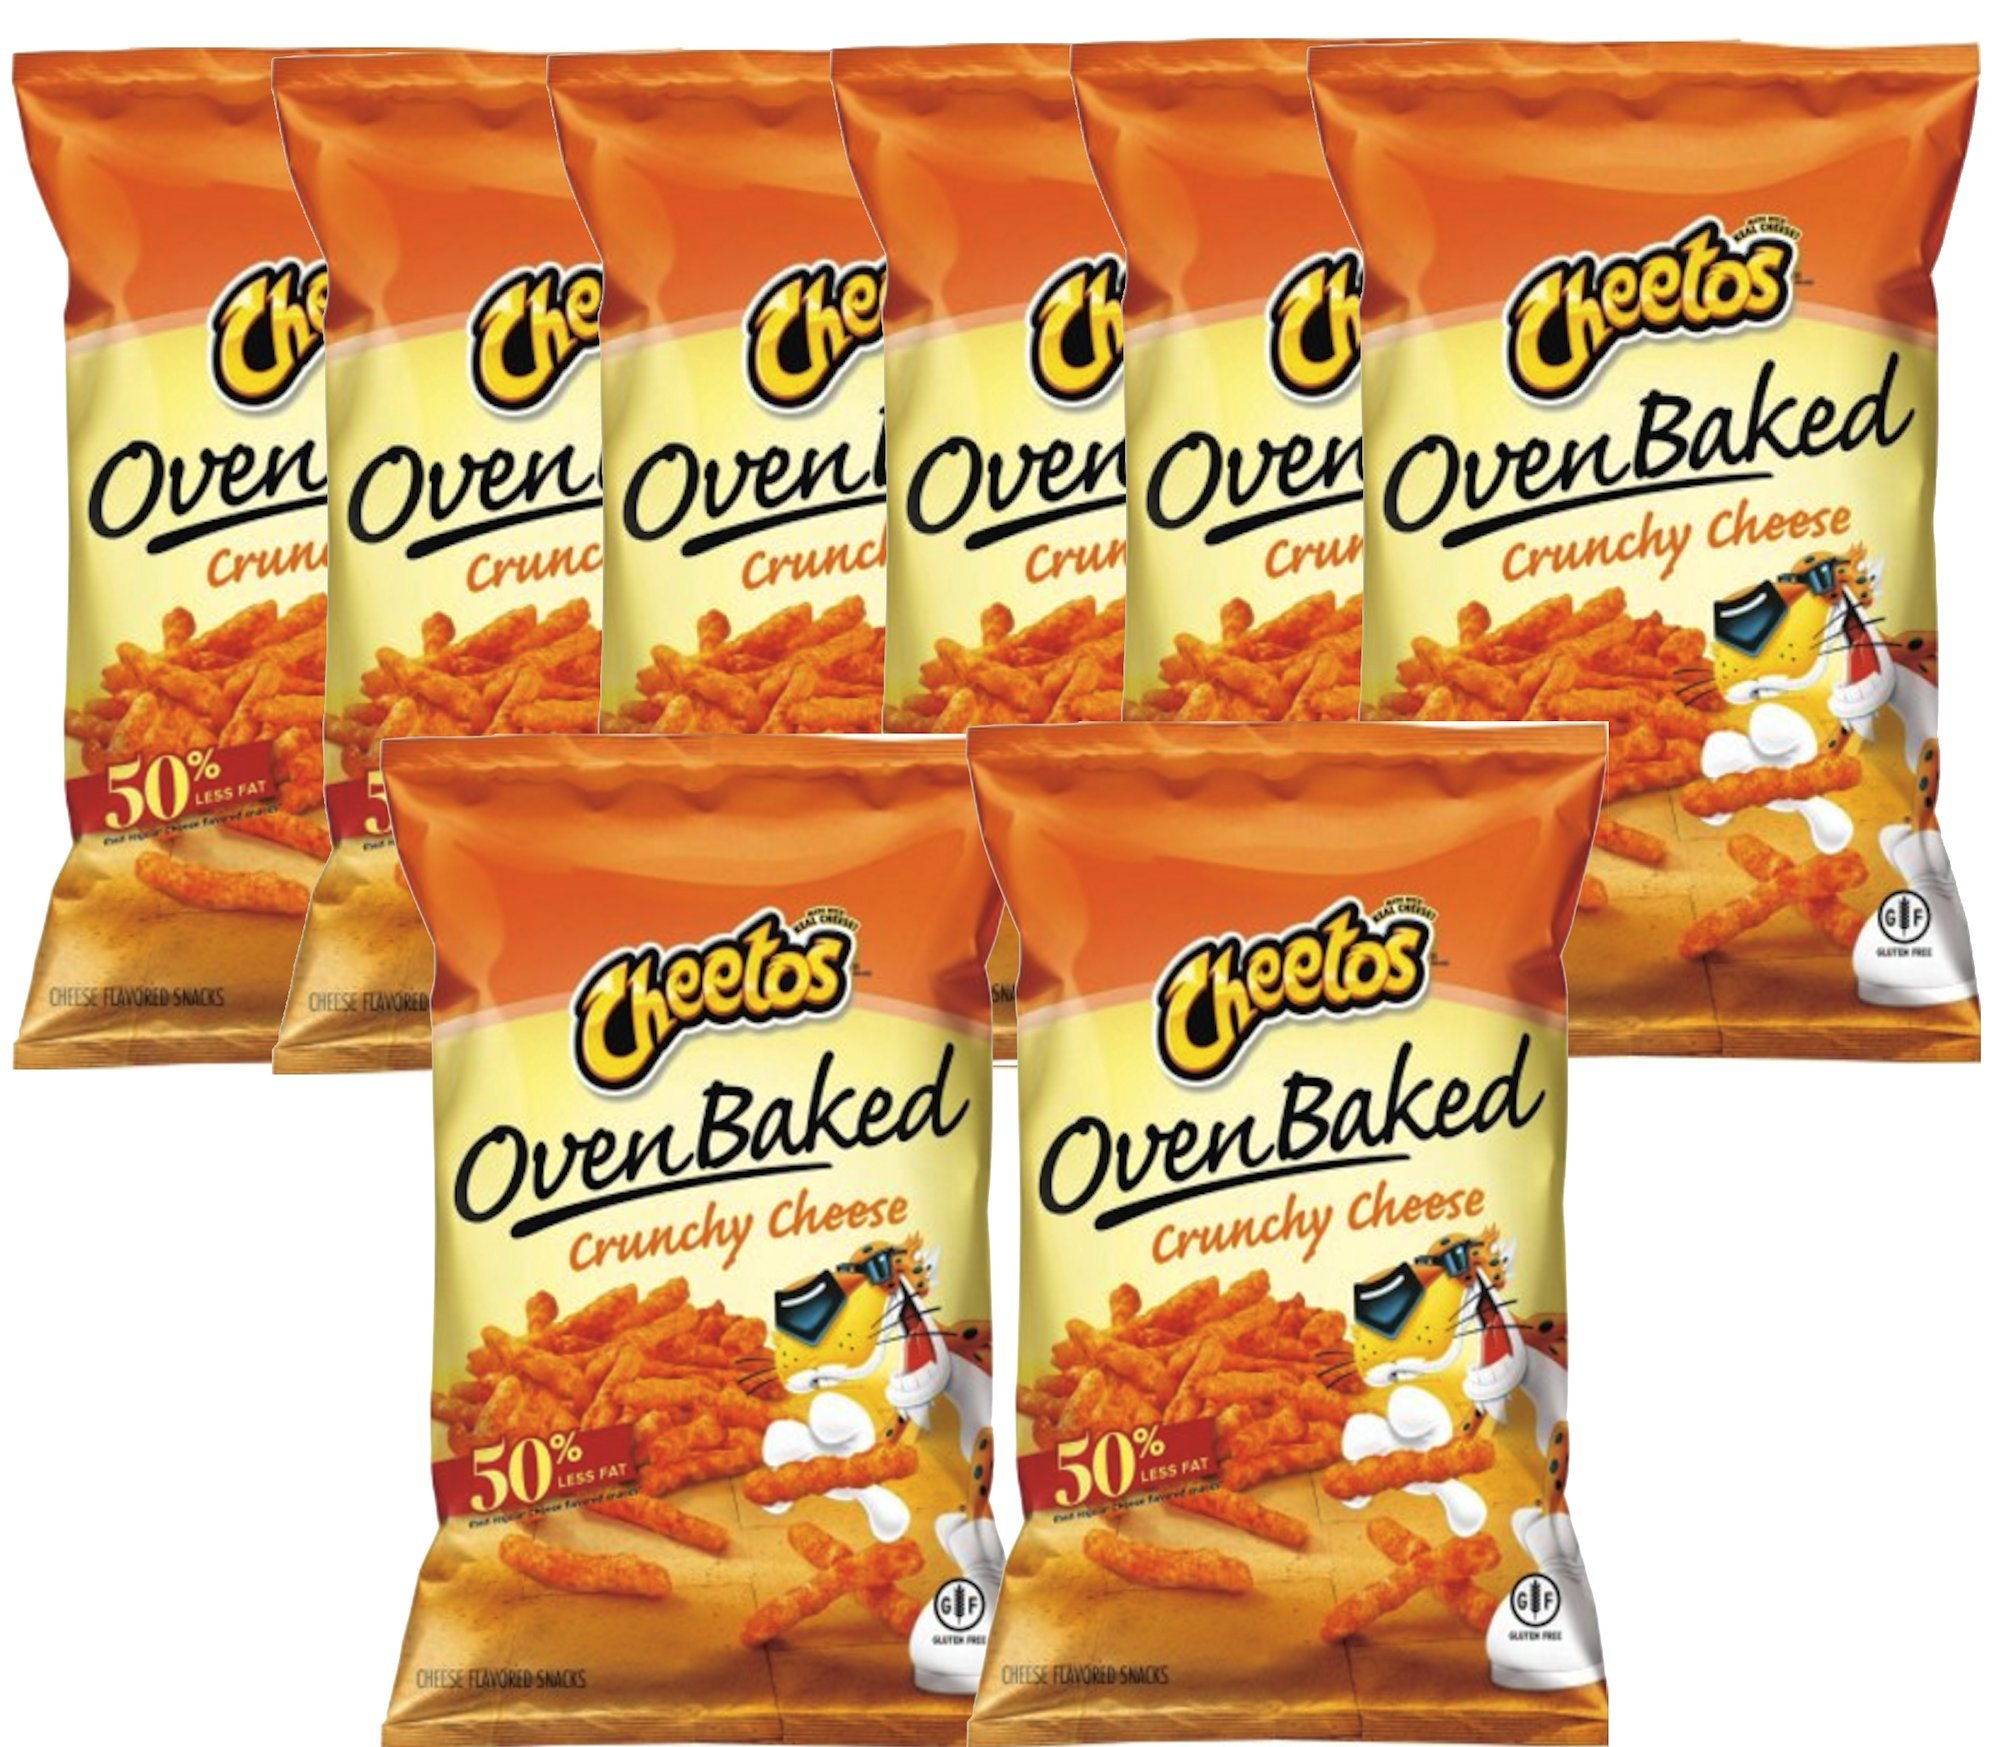 Cheetos Over Baked Crunchy Cheese Gluten Free Snacks 7.63 Oz Snack Care Package for College, Military, Sports (8)